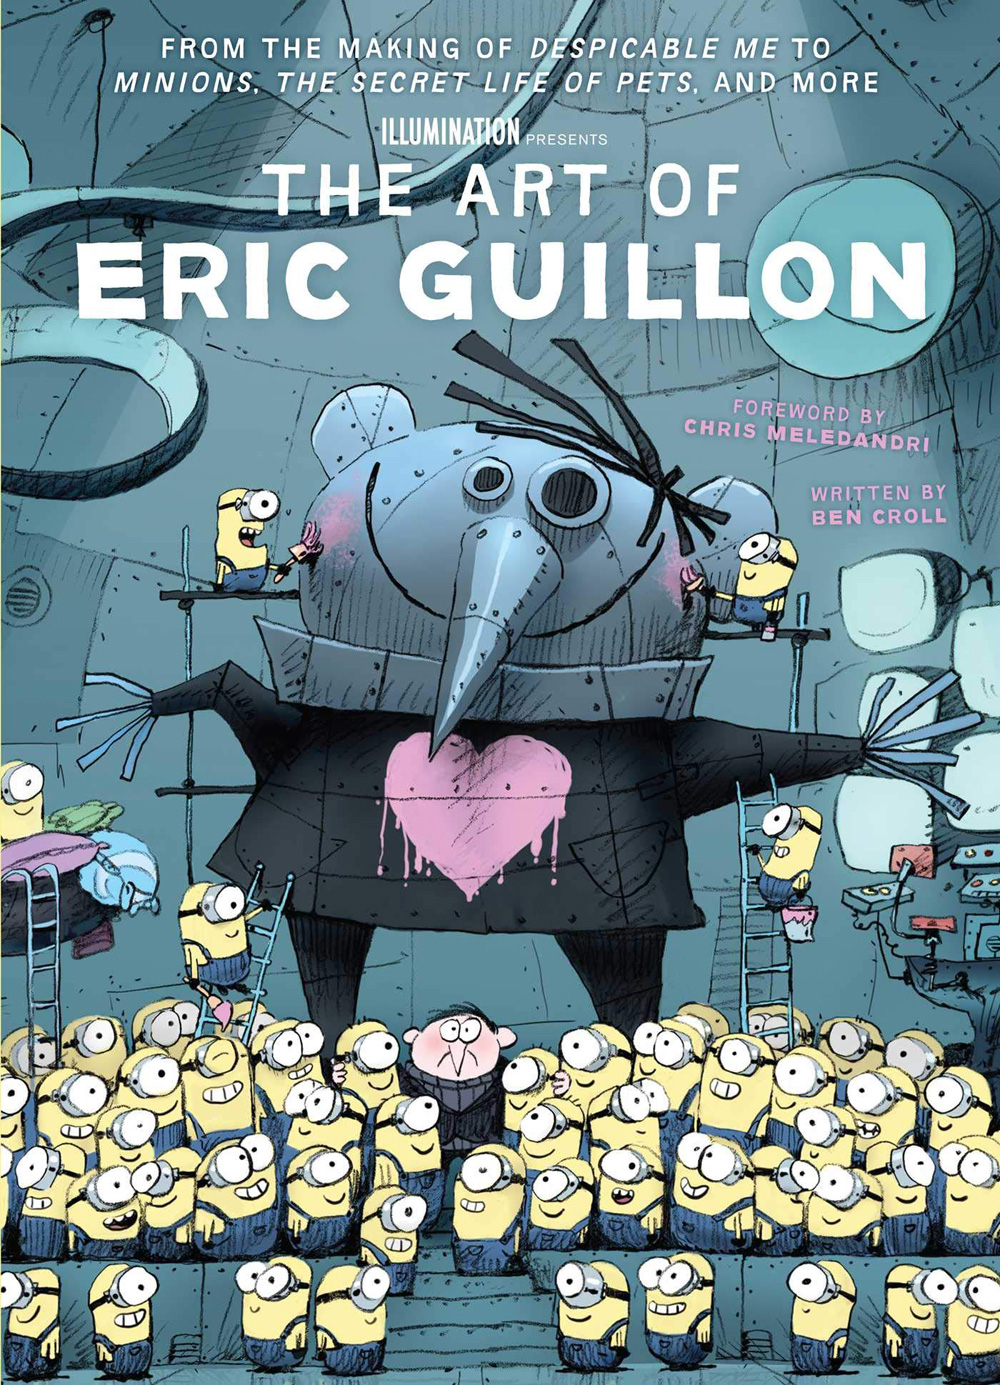 The Art of Eric Guillon: From the Making of Despicable Me to Minions, The Secret Life of Pets, and More